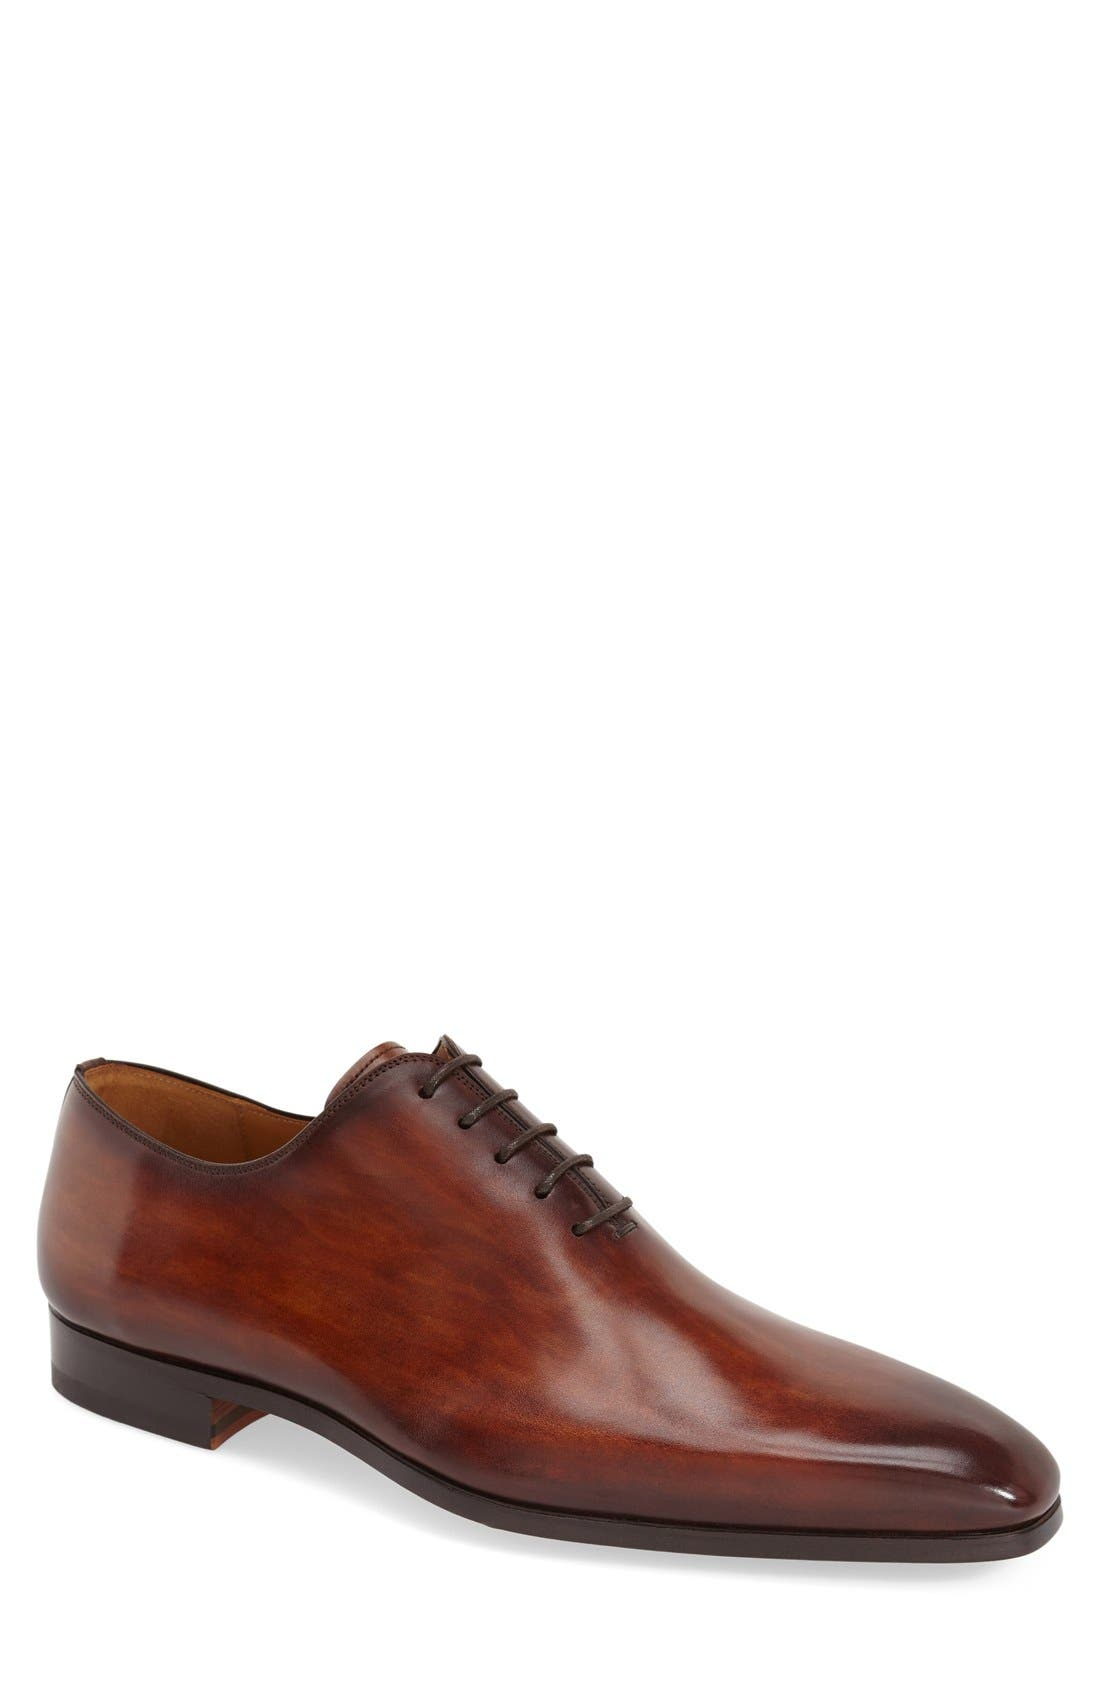 'Cruz' Plain Toe Oxford,                             Main thumbnail 1, color,                             Cognac Leather